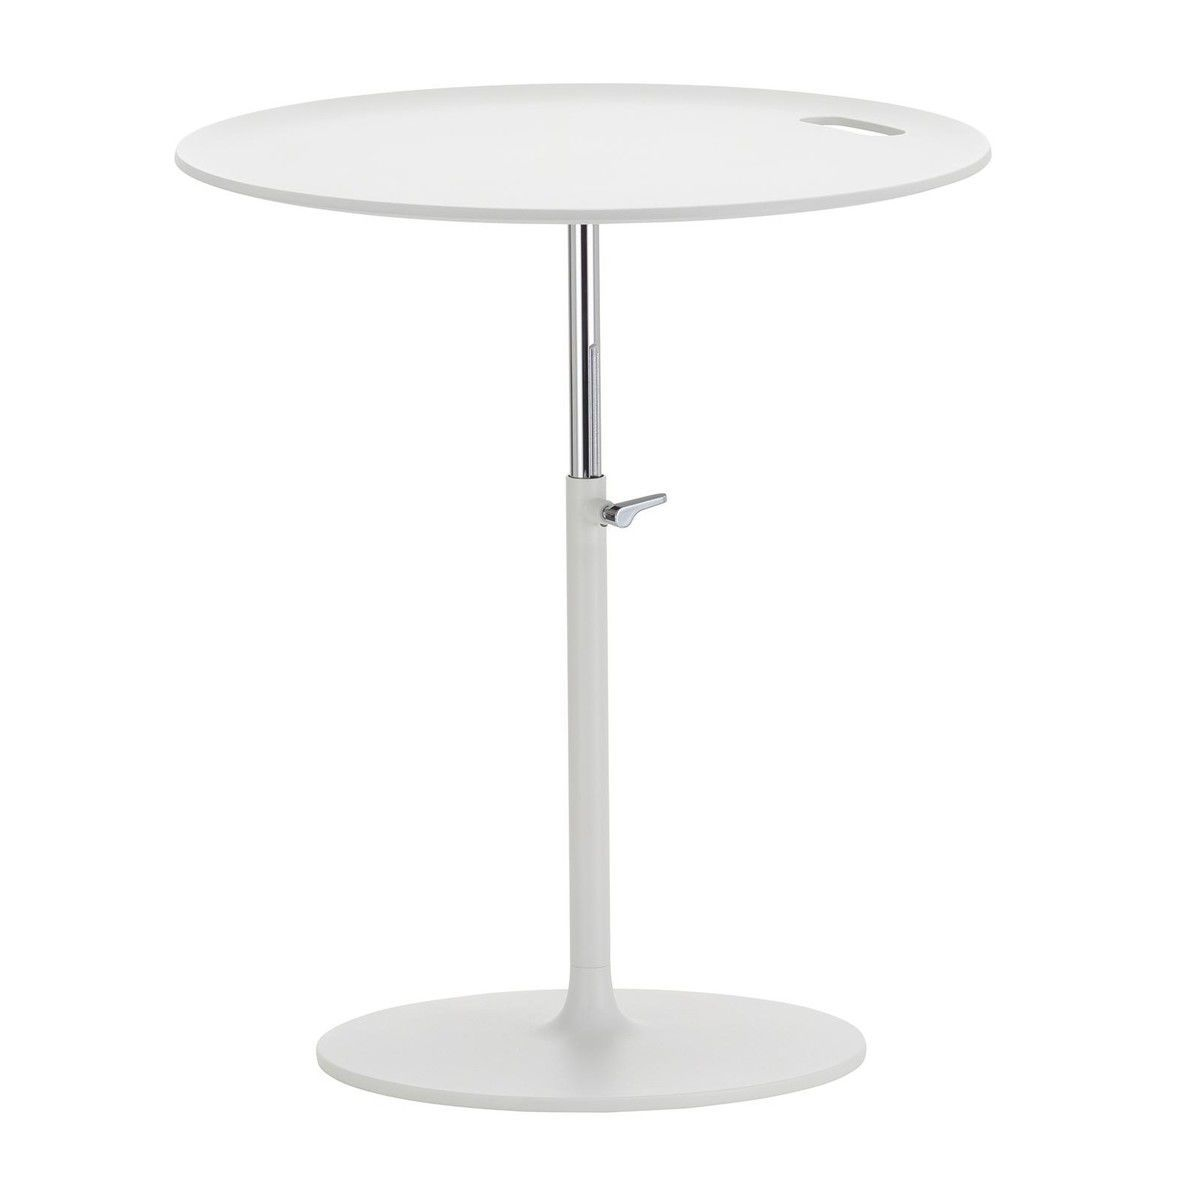 table d'appoint vitra